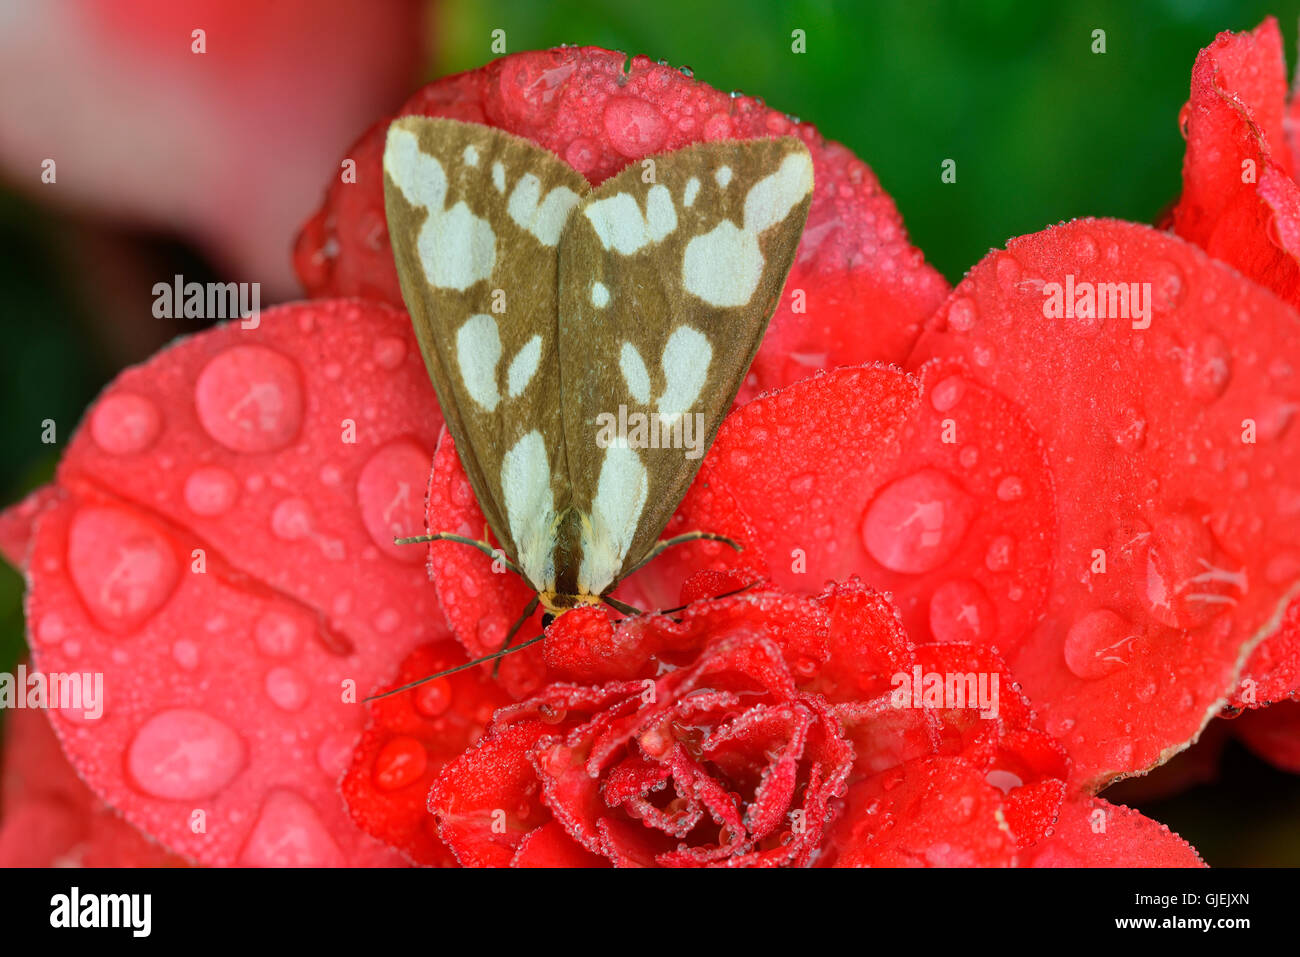 Confused Haploa moth (Haploa confusa) Resting on red garden flowers, with raindrops, Greater Sudbury, Ontario, Canada - Stock Image